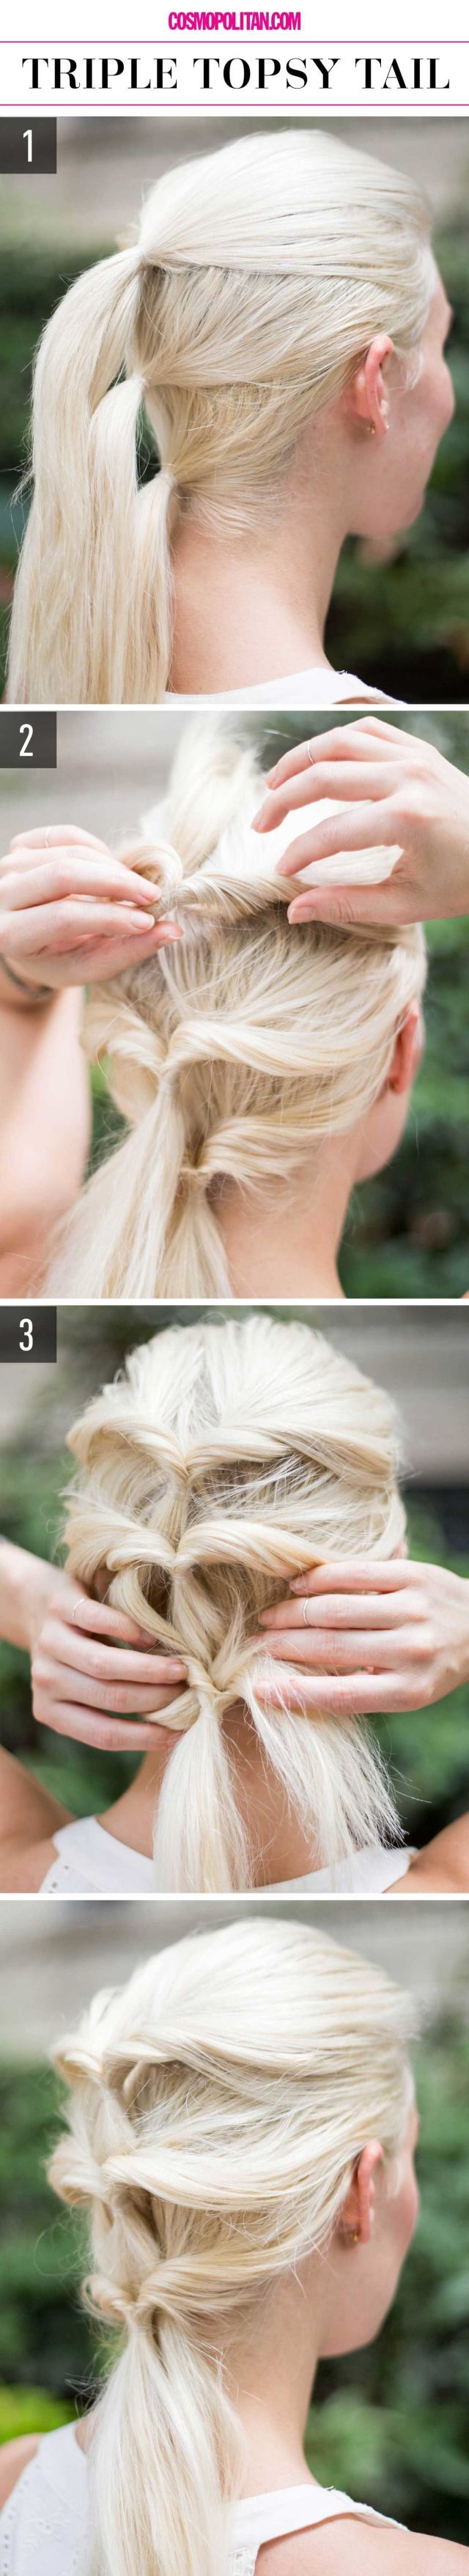 15+Super-Easy+Hairstyles+for+Lazy+Girls+Who+Can't+Even+  - Cosmopolitan.com: Hair Styles, Lazy Girl Hairstyles, Cant, 15 Super Easy, Super Easy Hairstyles, Beauty, Lazy Girls